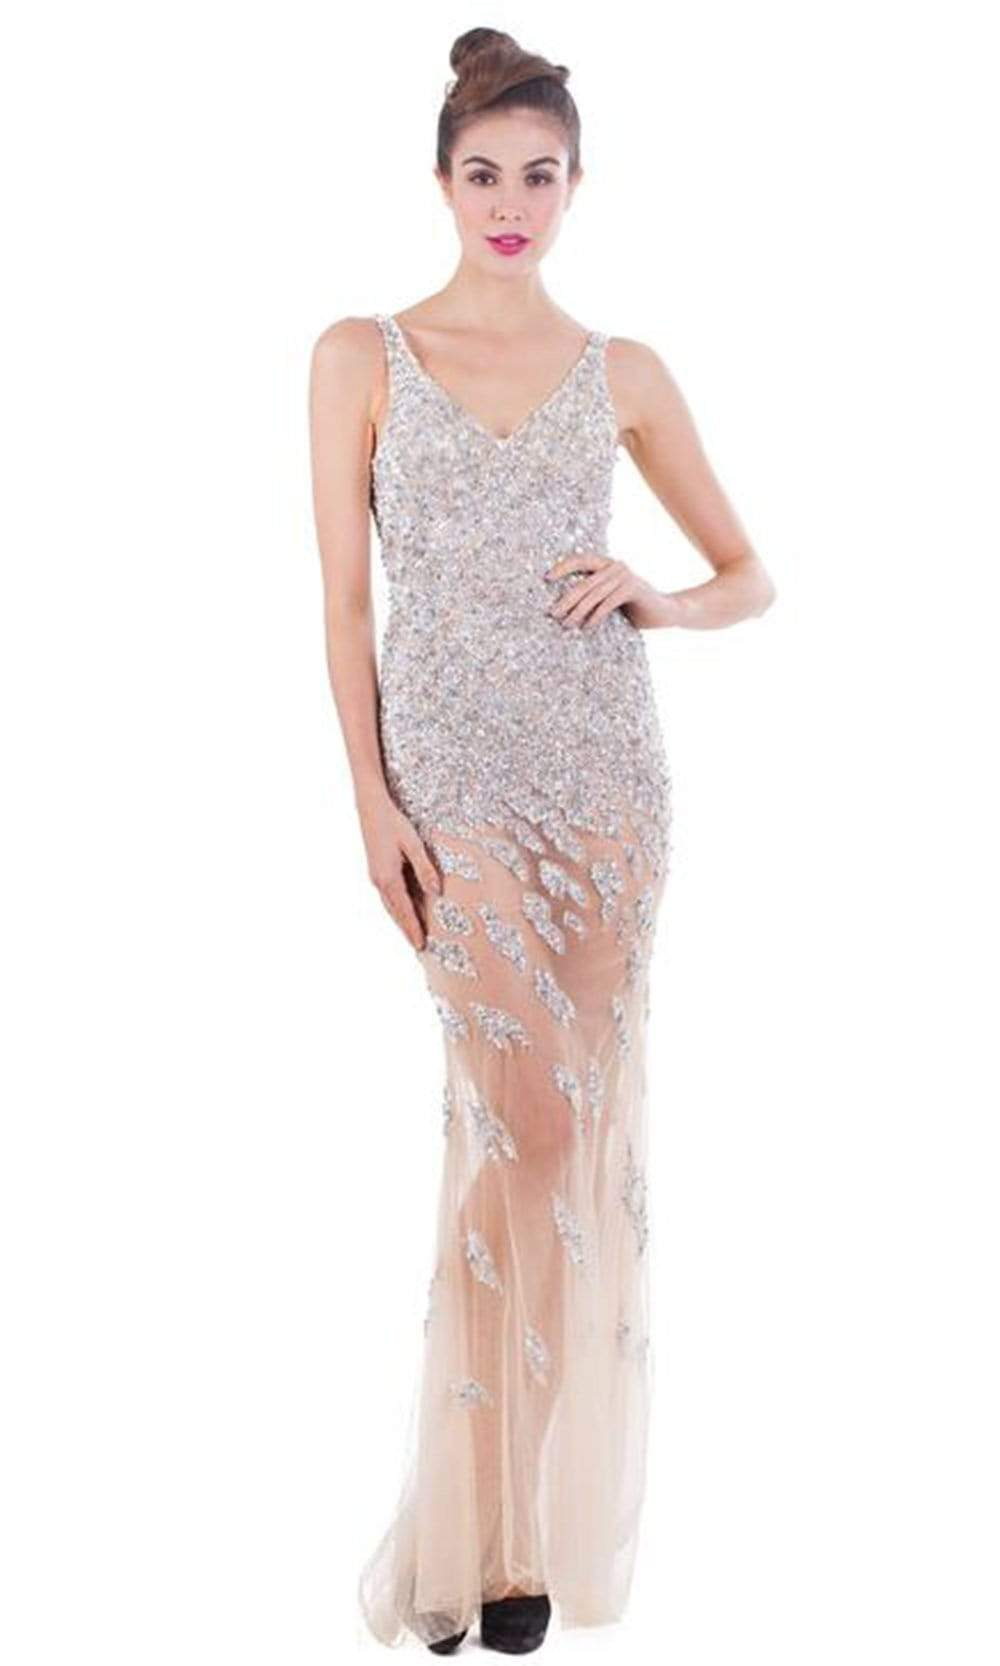 Portia and Scarlett - Jovania Crystal Sequined V Neck Sheath Dress from Portia and Scarlett